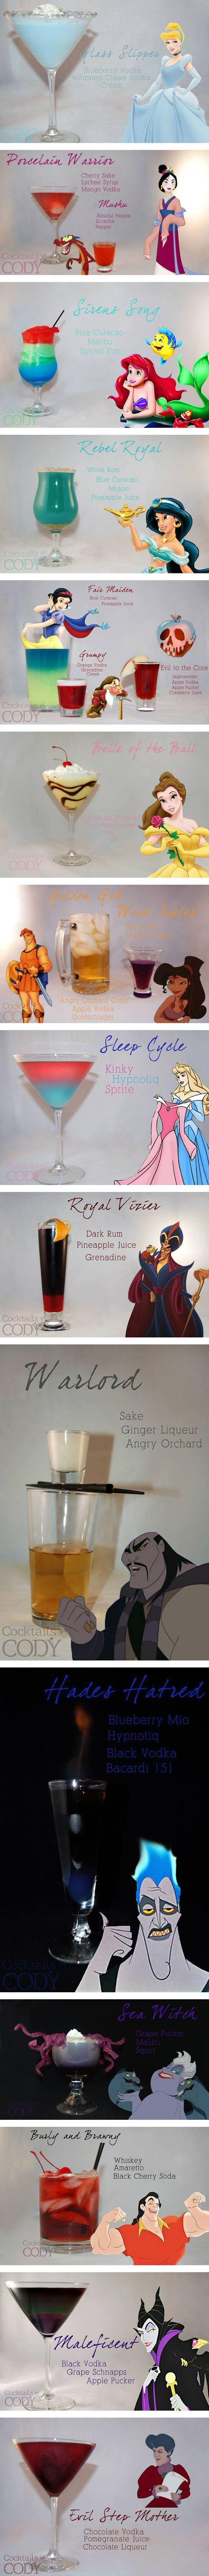 Disney princess themed cocktails. These will be served at my wedding considering I want a disney princess dress, princess cut ring, etc.: